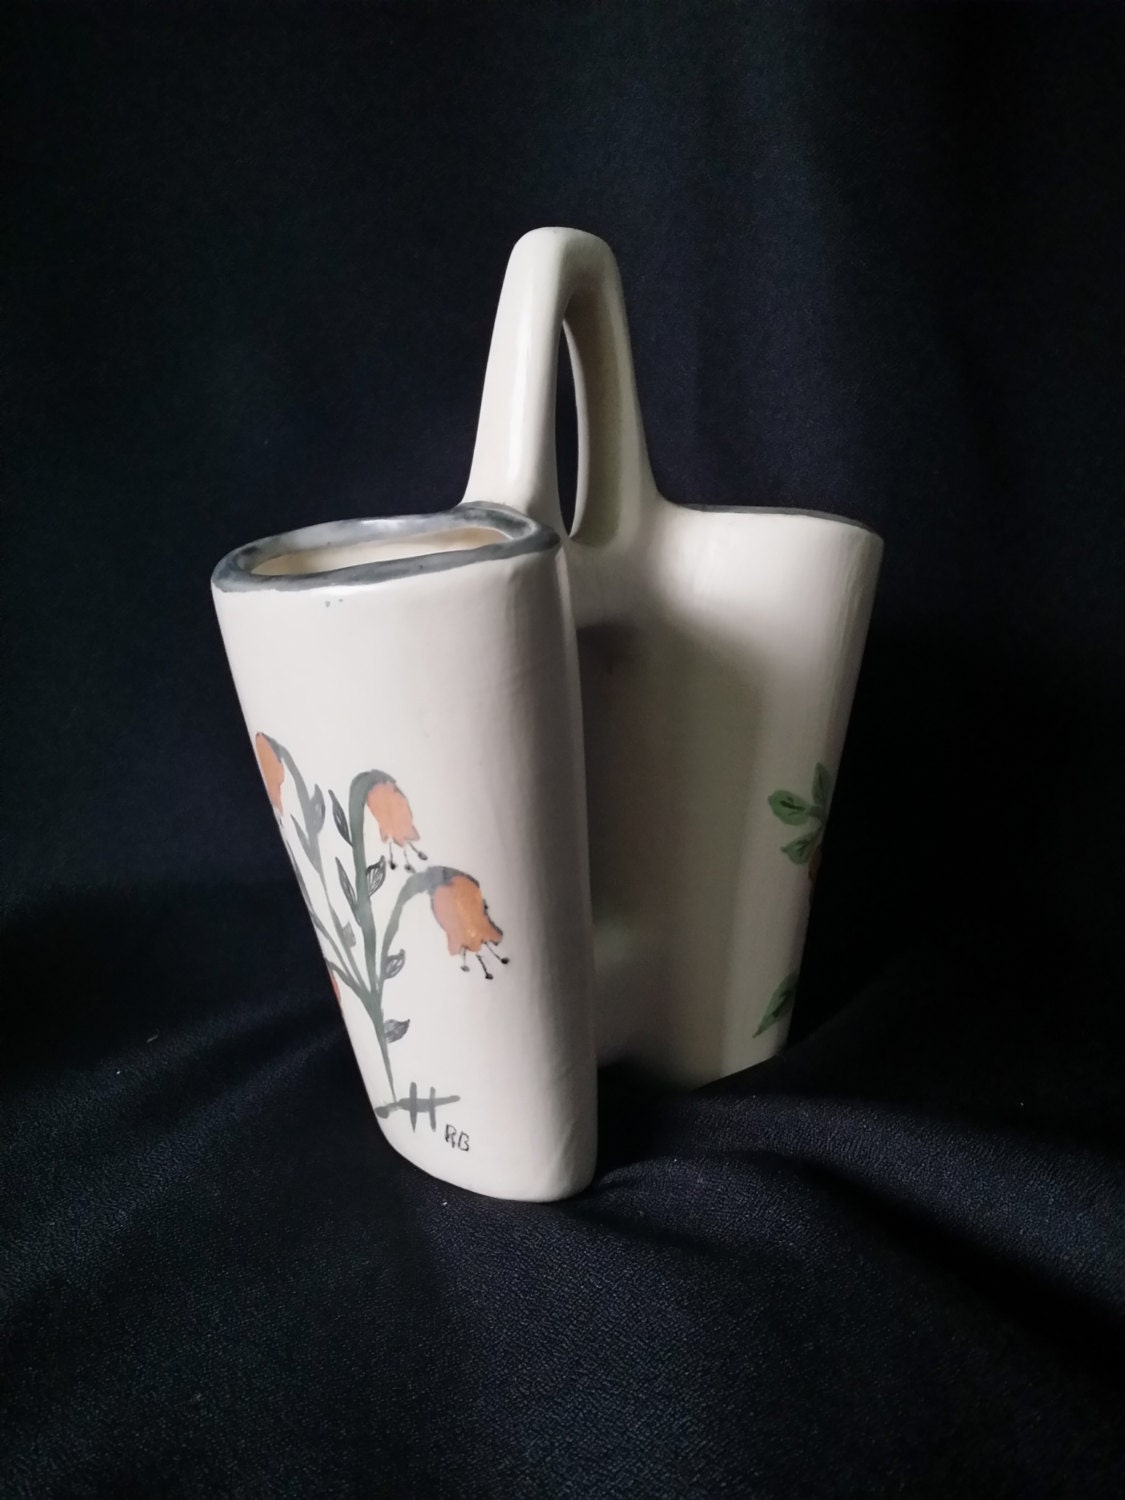 CLEARANCE Vintage Cottage Vase Chic White Ceramic Porcelain Desk Accessory Pe